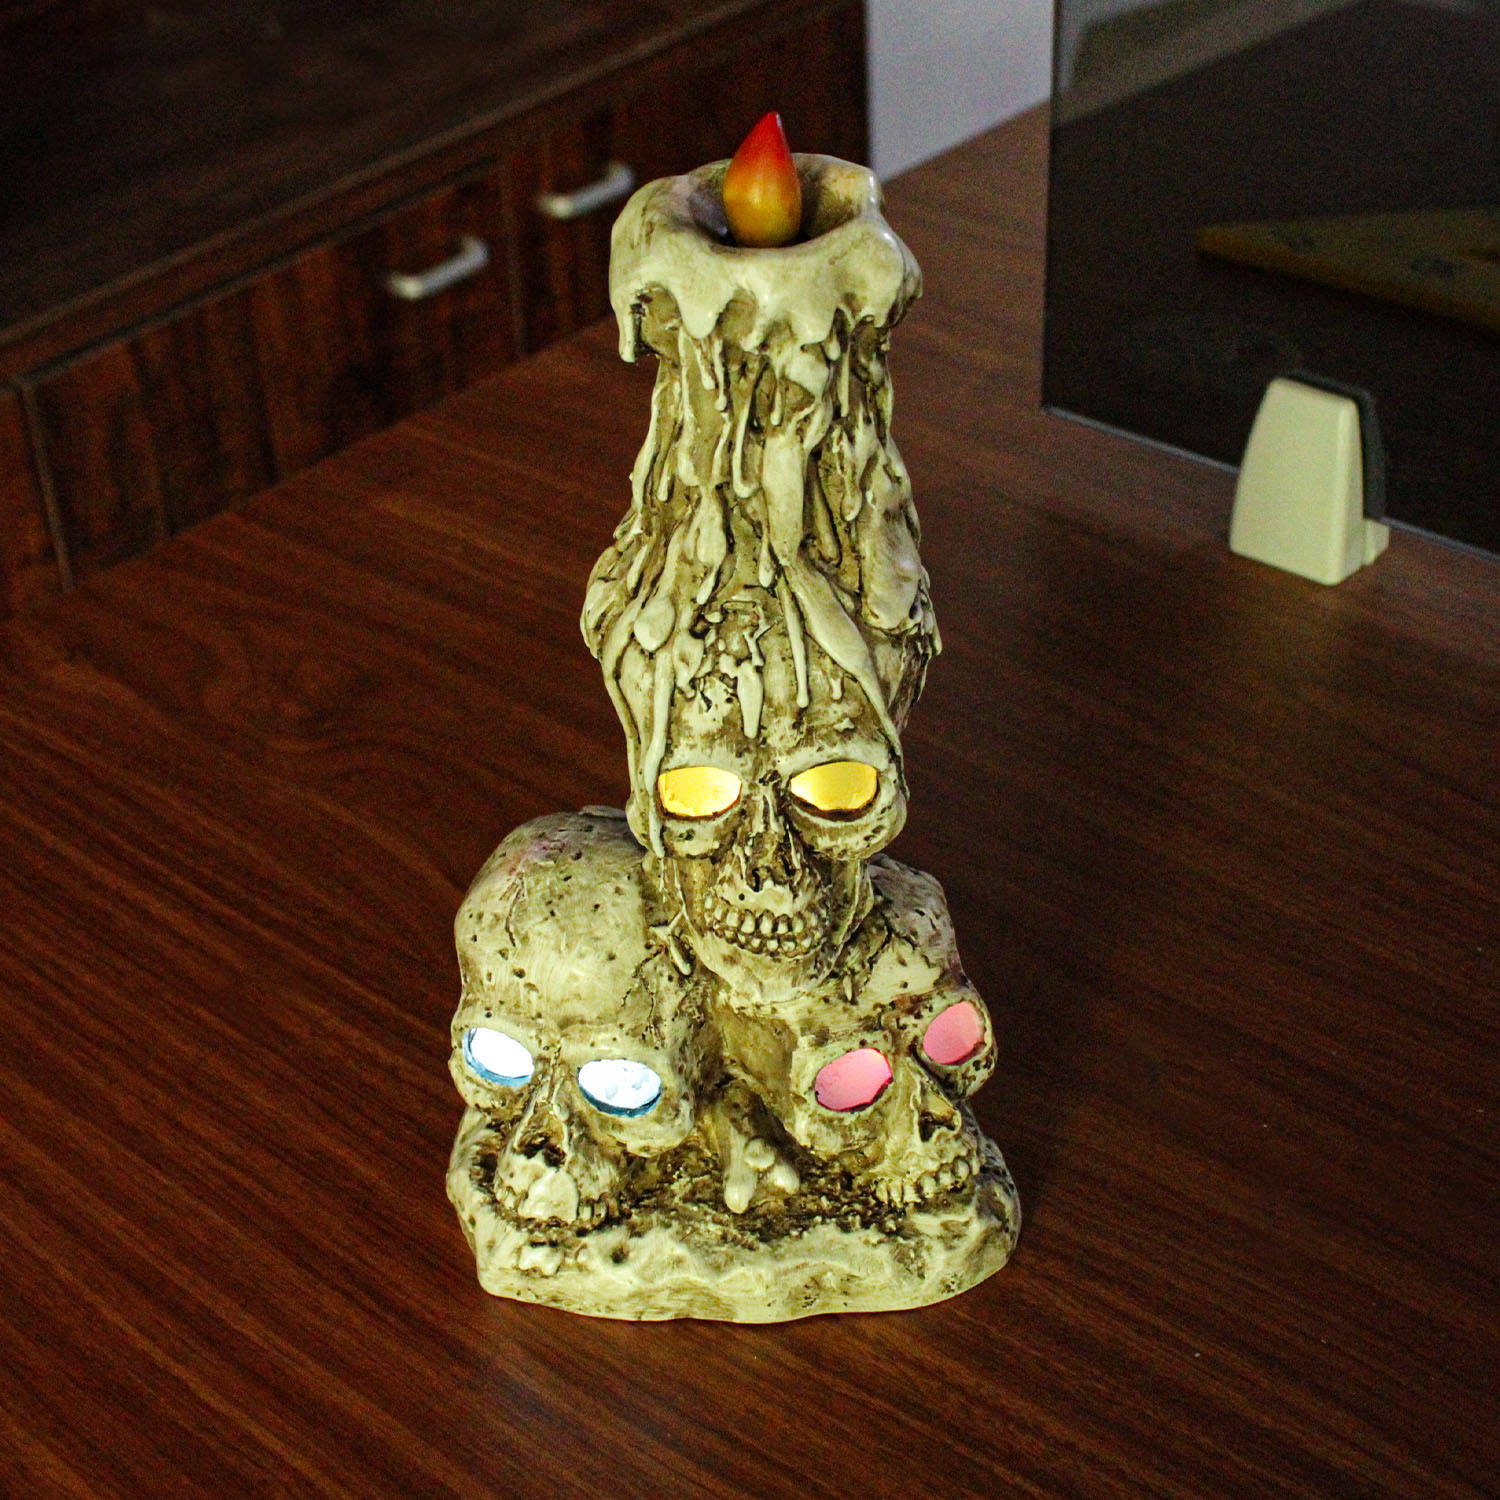 Halloween Resin Skeleton Head White And Light Brown Colored Floral Human Skeleton Crafts